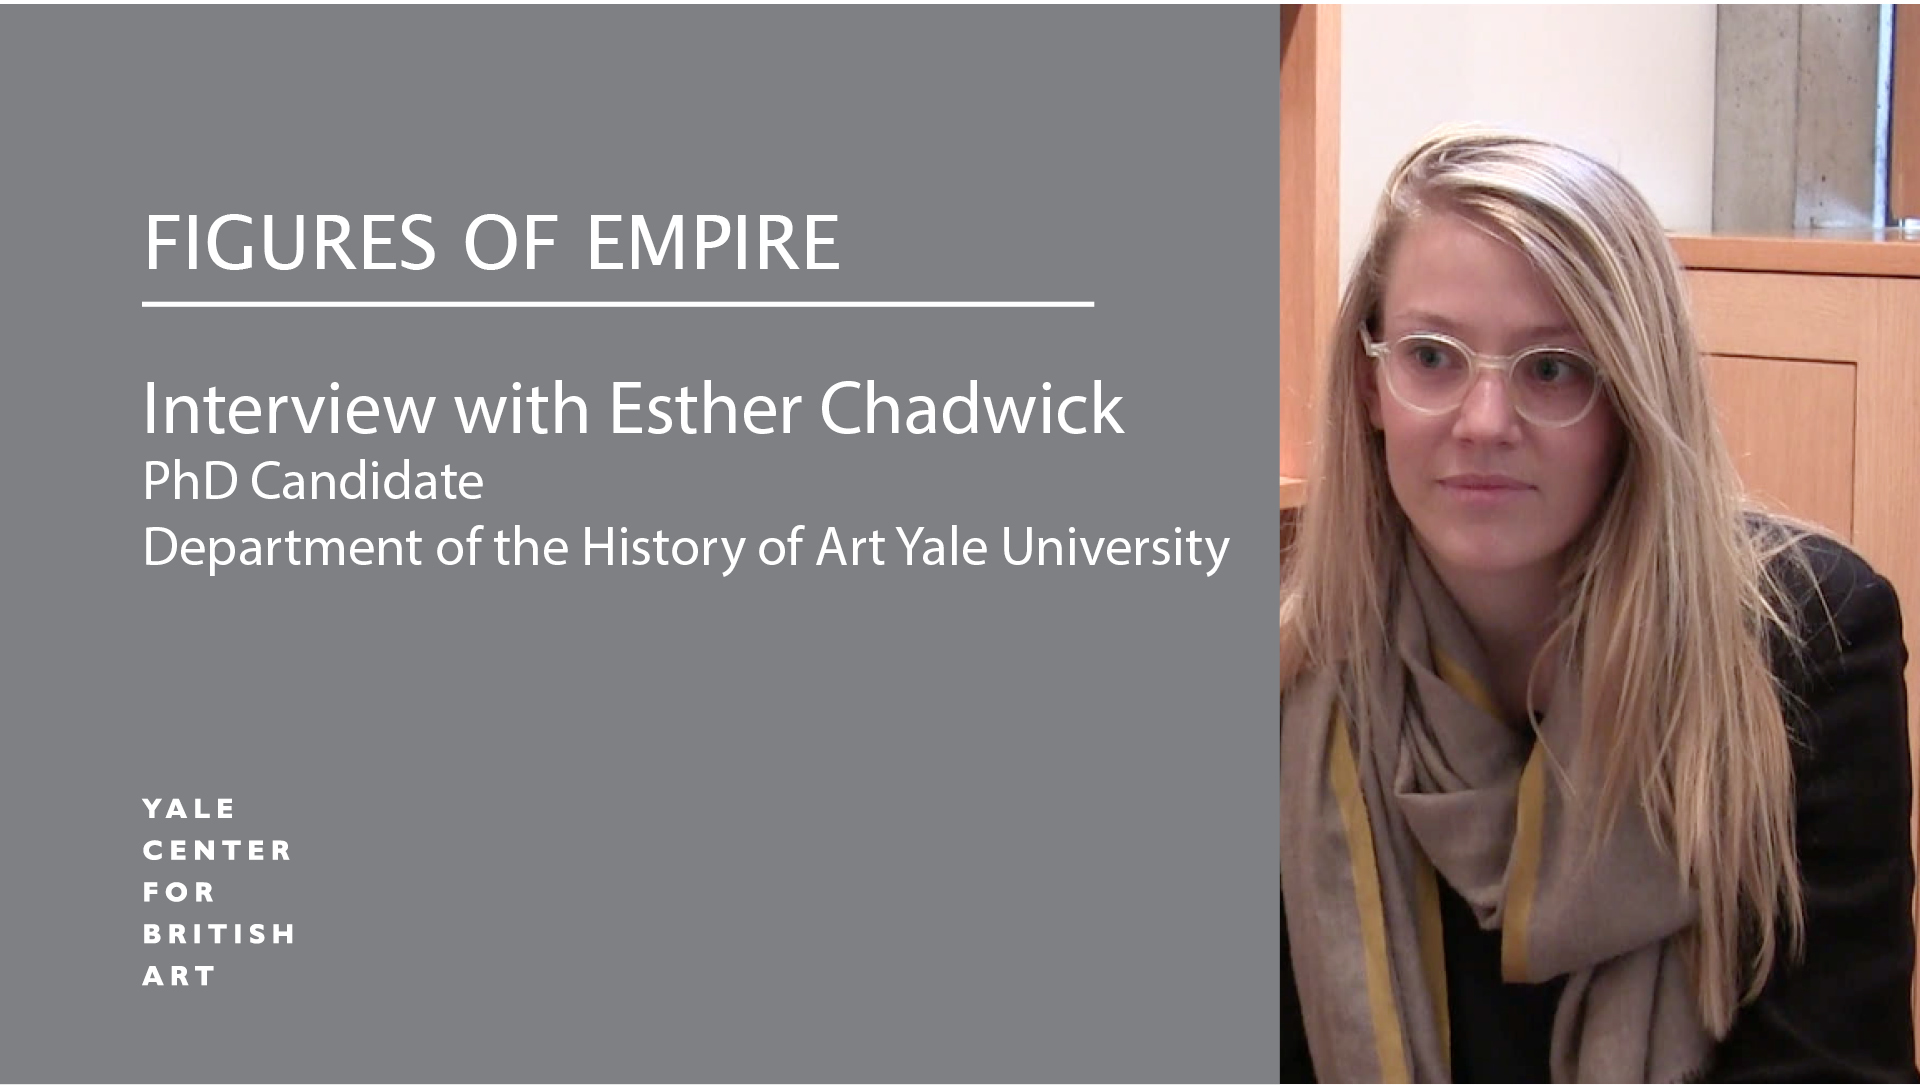 Esther Chadwick, co-curator for Figures of Empire, photo courtesy of Yale Center for British Art